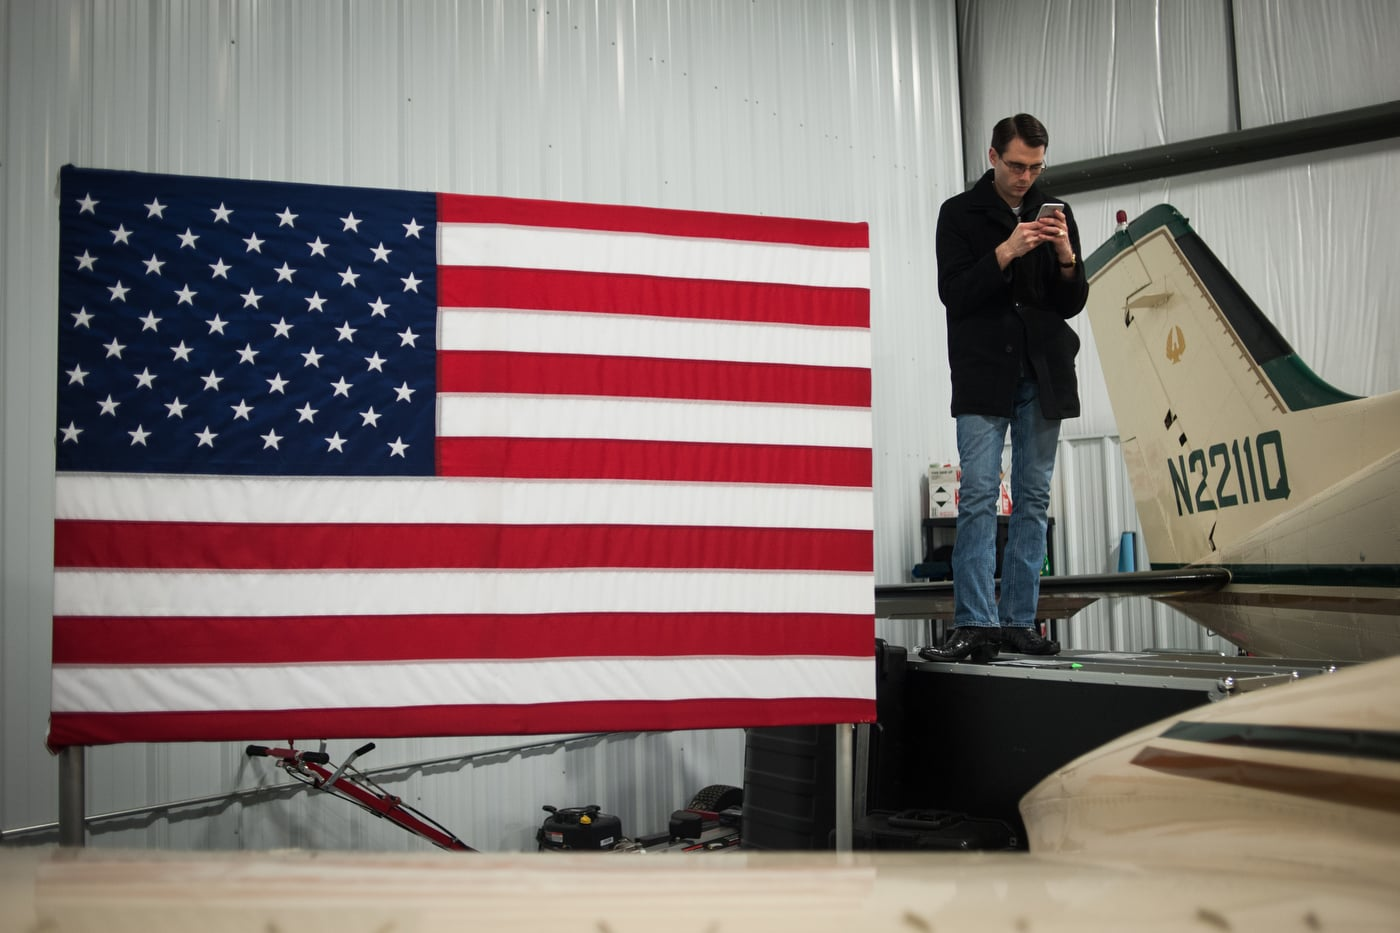 U.S. Republican presidential candidate Ted Cruz speaks at the Webster City Municipal Airport in in Webster City, Iowa January 7, 2016. REUTERS/Mark Kauzlarich